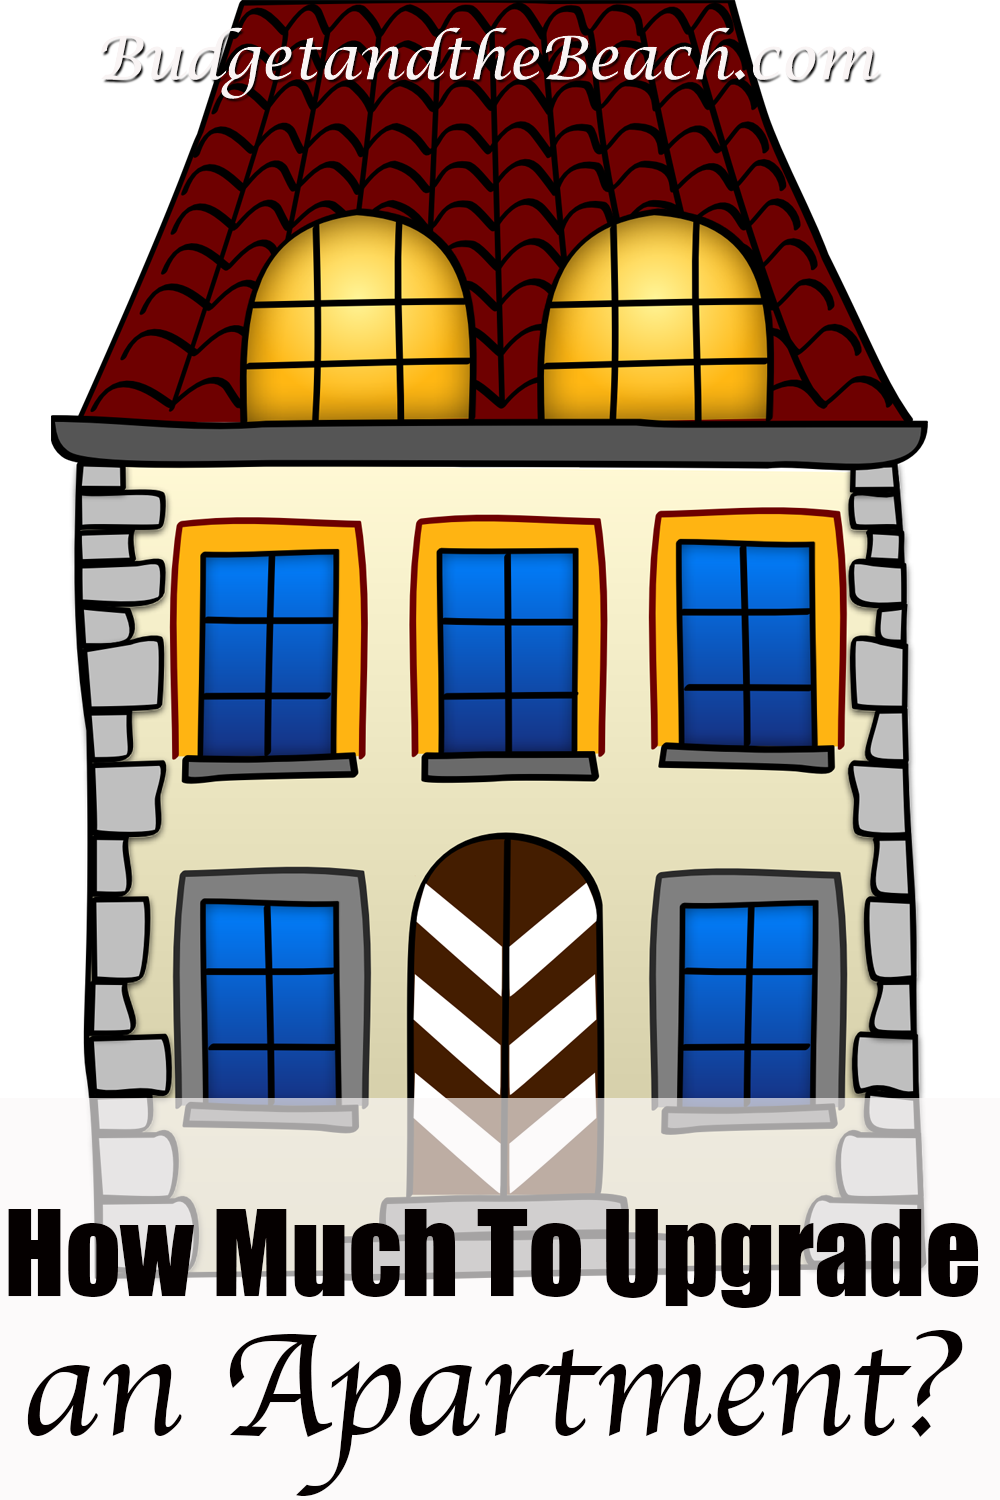 Apartment clipart apt. How much to upgrade